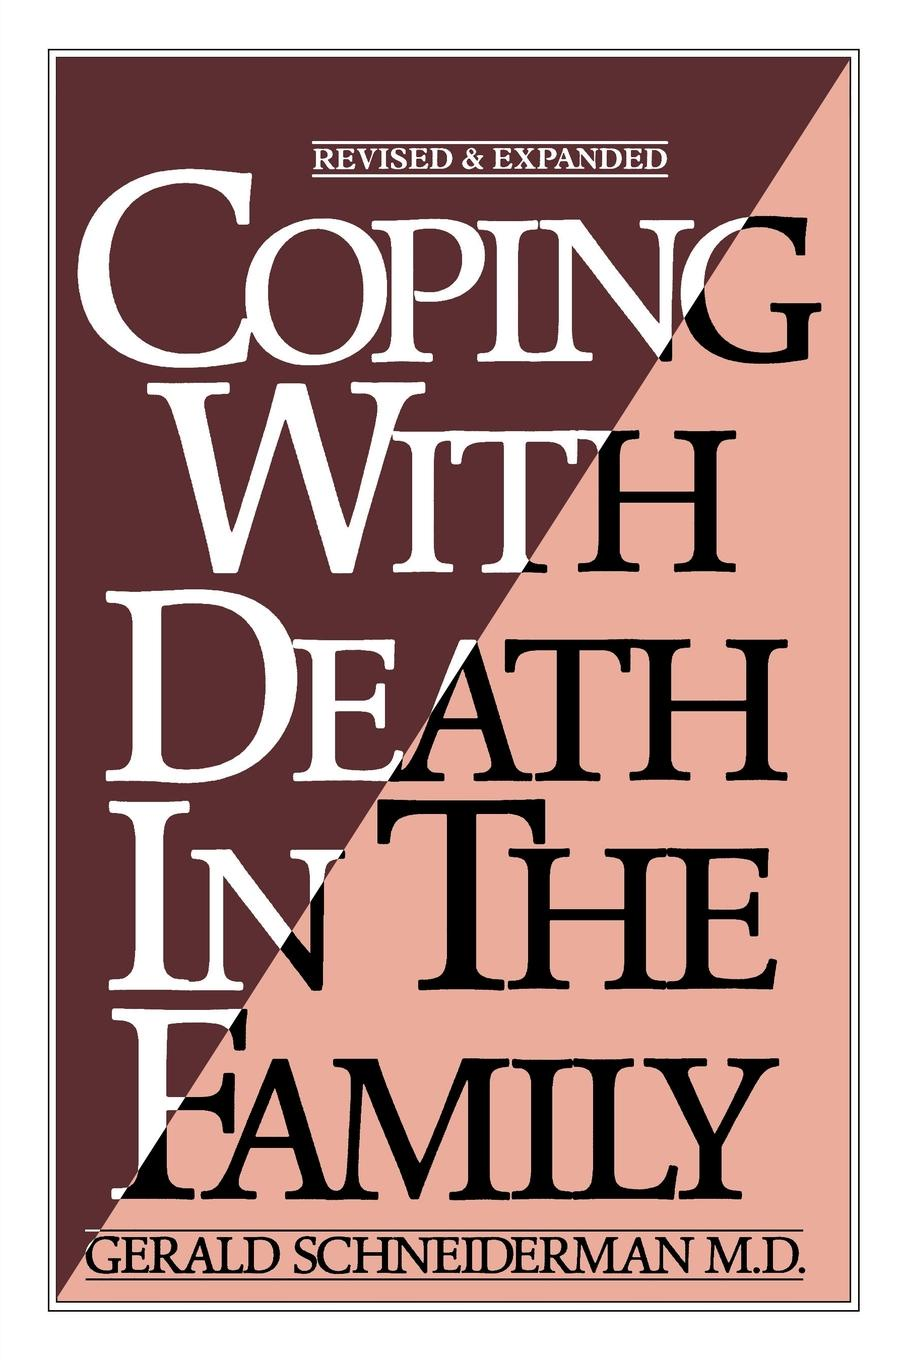 Gerald Schneiderman M.D. Coping with Death In the Family banta trudy w assessing student learning a common sense guide